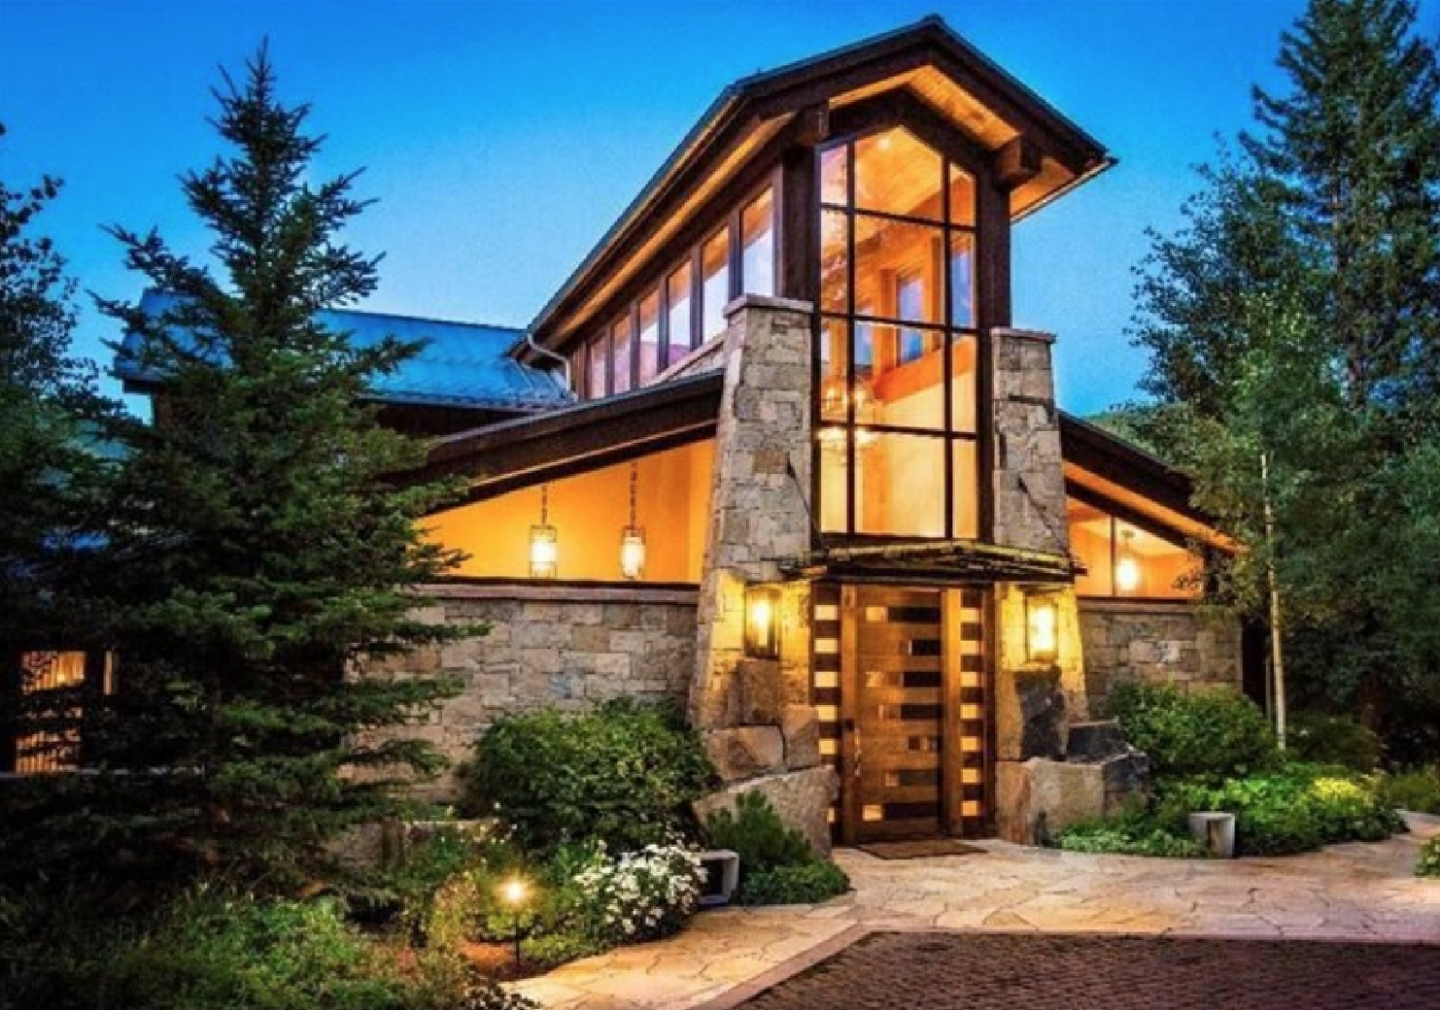 With premium ski access, this stately 11,509-square-foot estate mixes rustic luxury with mountain modern design.